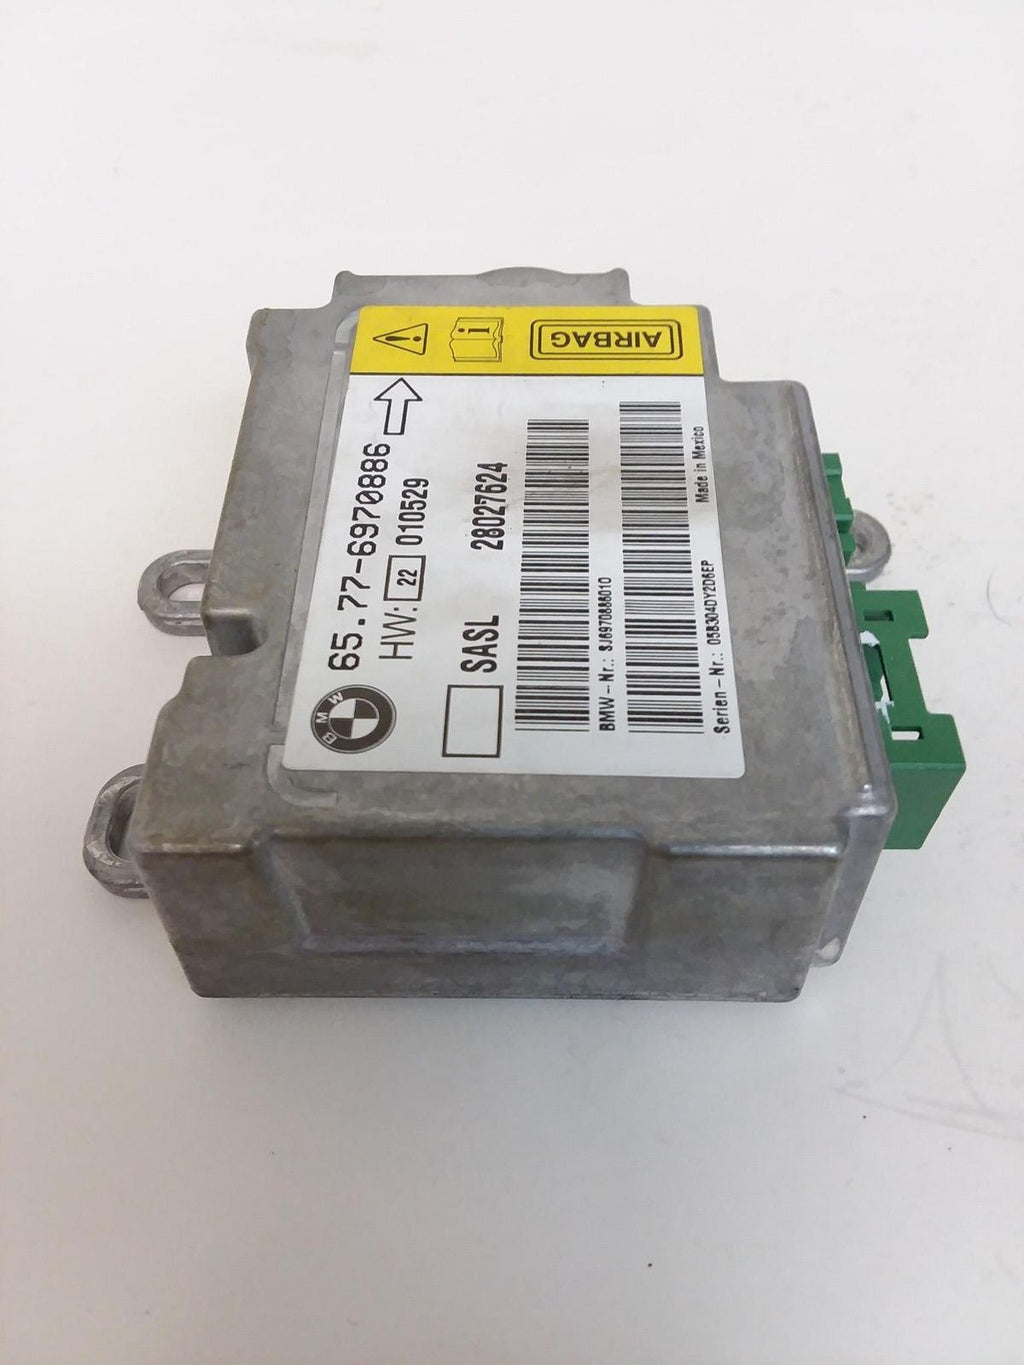 02-08 E65 E66 BMW 745 750 760 7 Series Left A Pilar Module OEM 65776970886